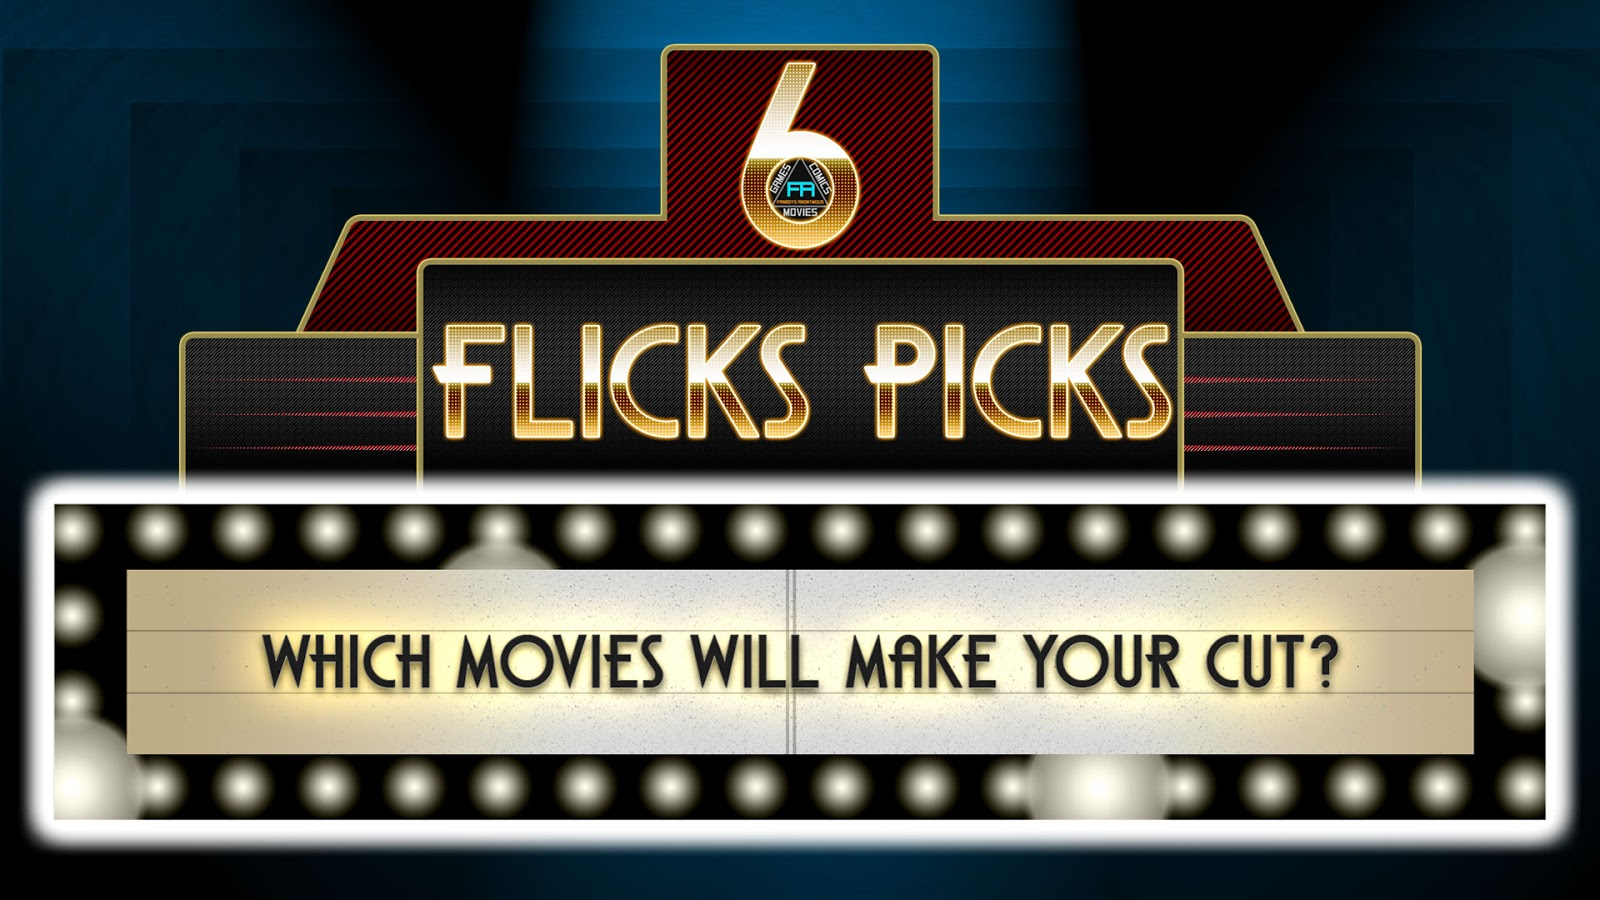 What movies are coming out June 2017 6 Flicks Picks